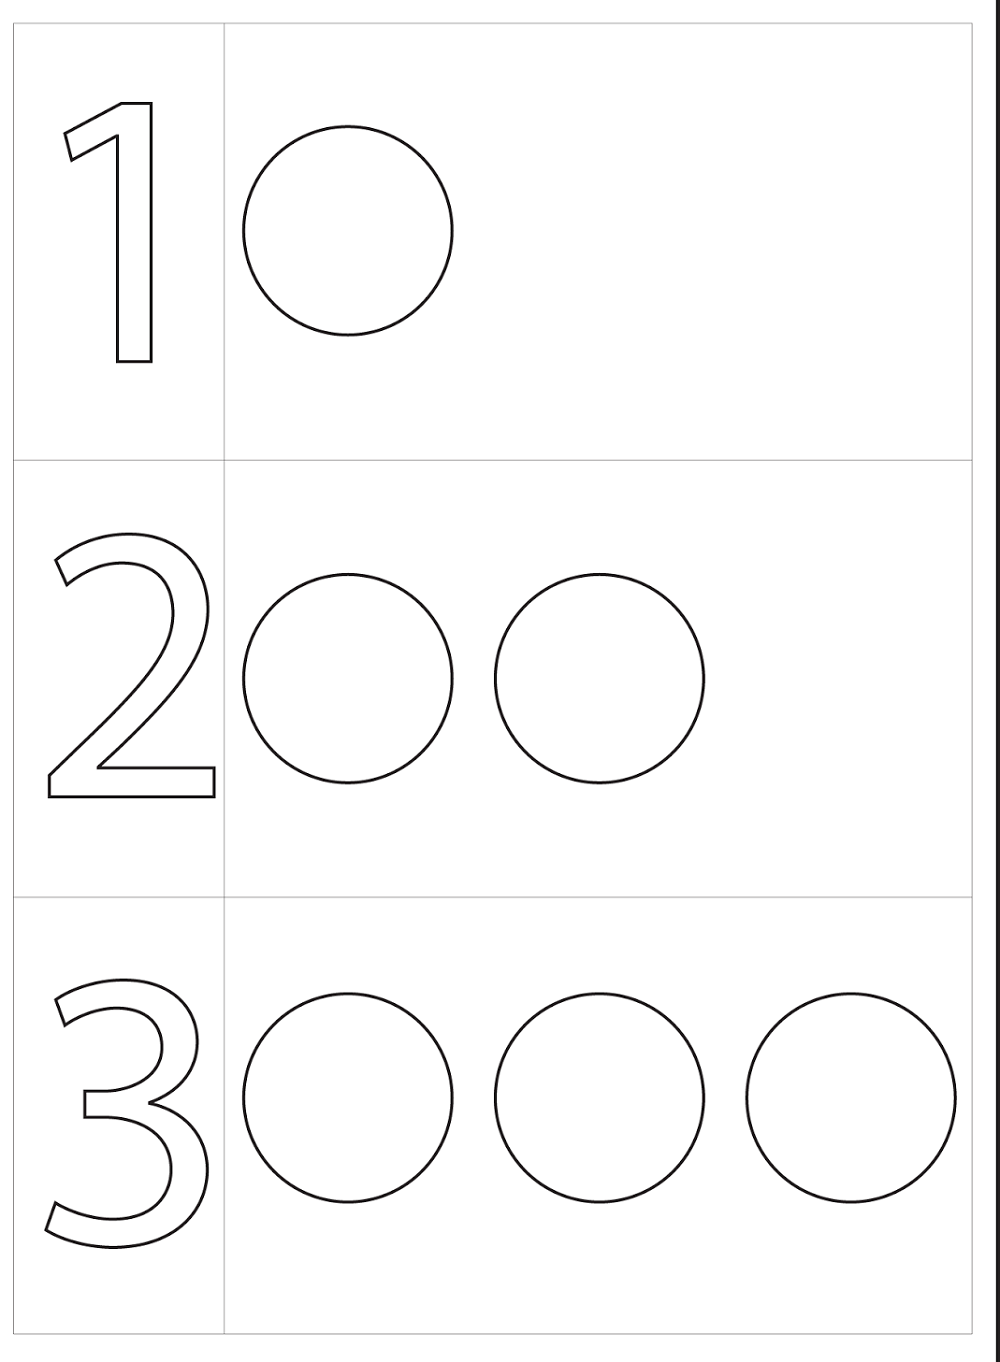 shapes-and-numbers-page